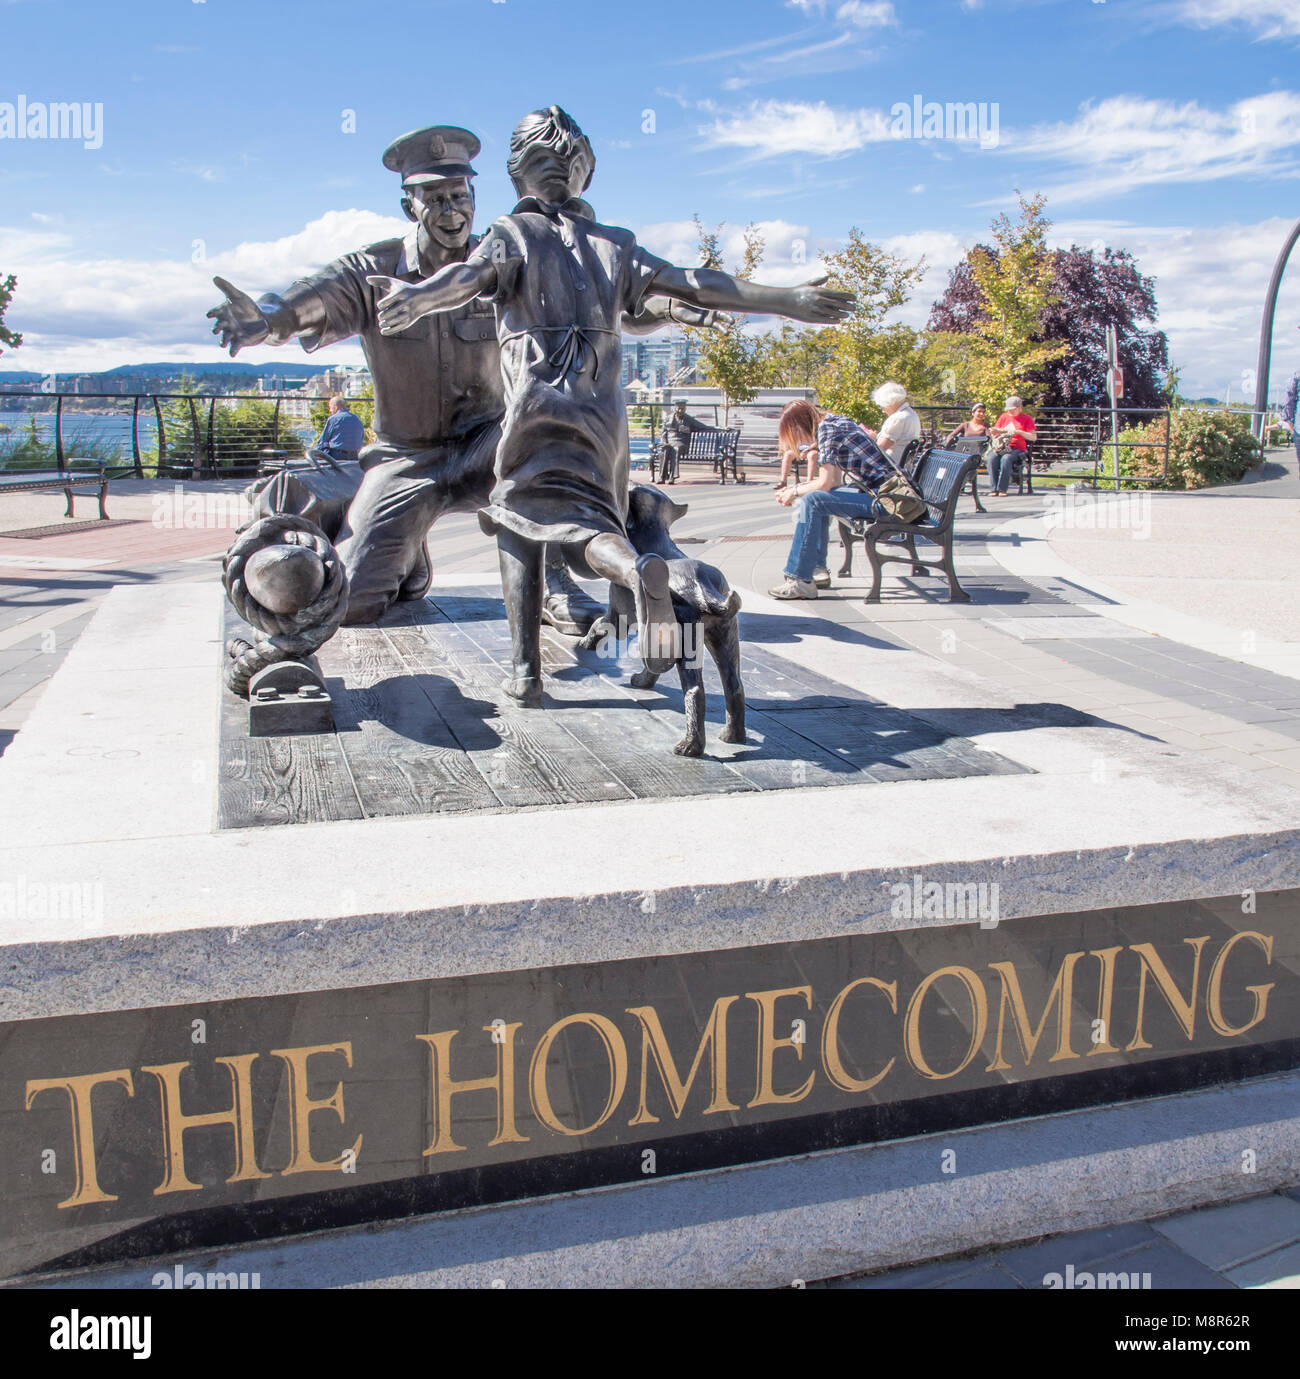 The Homecoming Sculpture In Victoria British Columbia In Canada